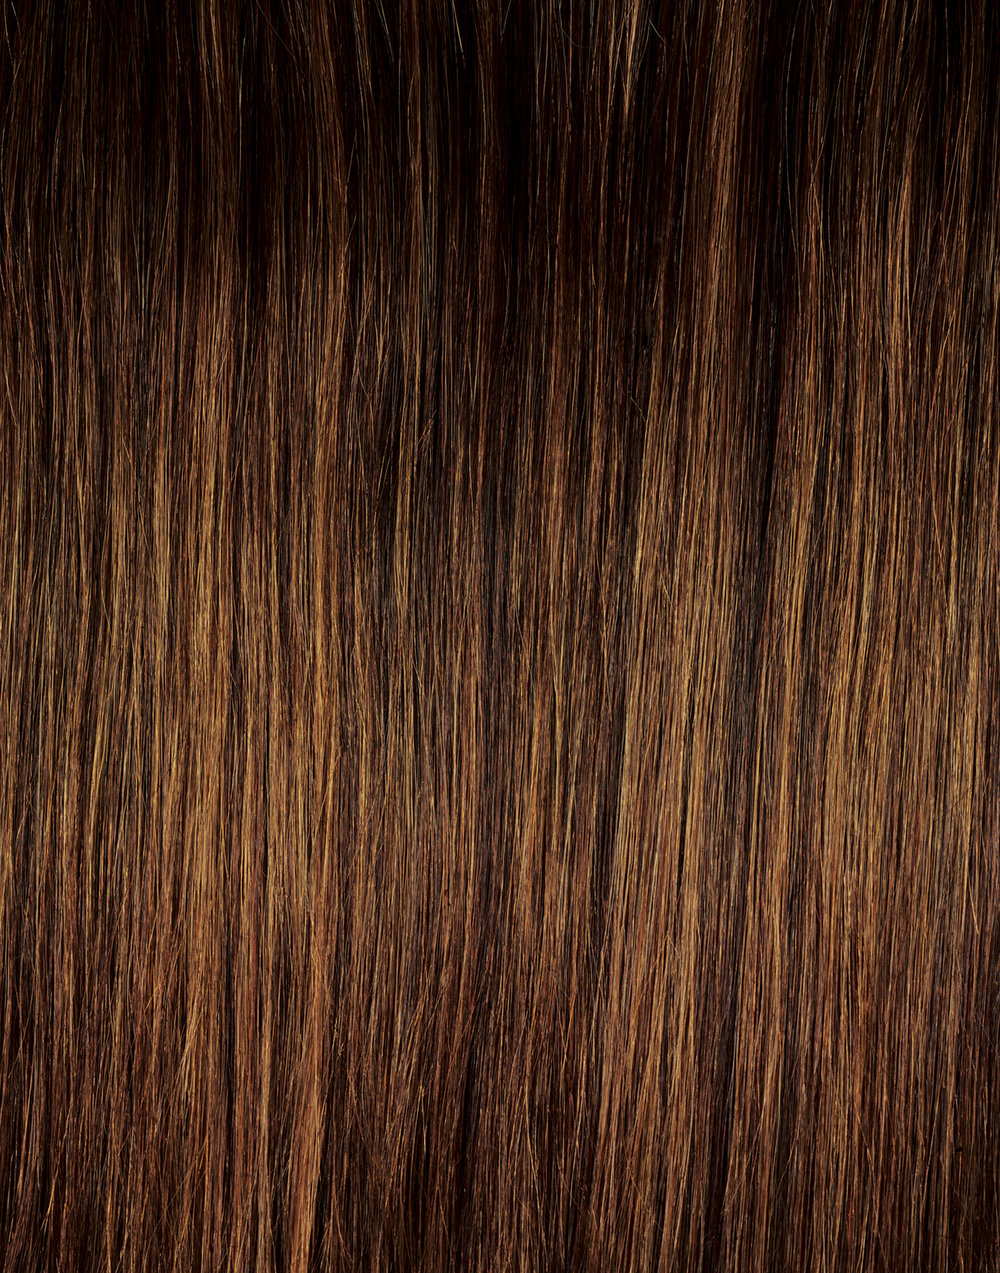 Glamour_11_Nov2012_superhuman_hair_color-1112-GL-WELL-52_01_RGB.jpg